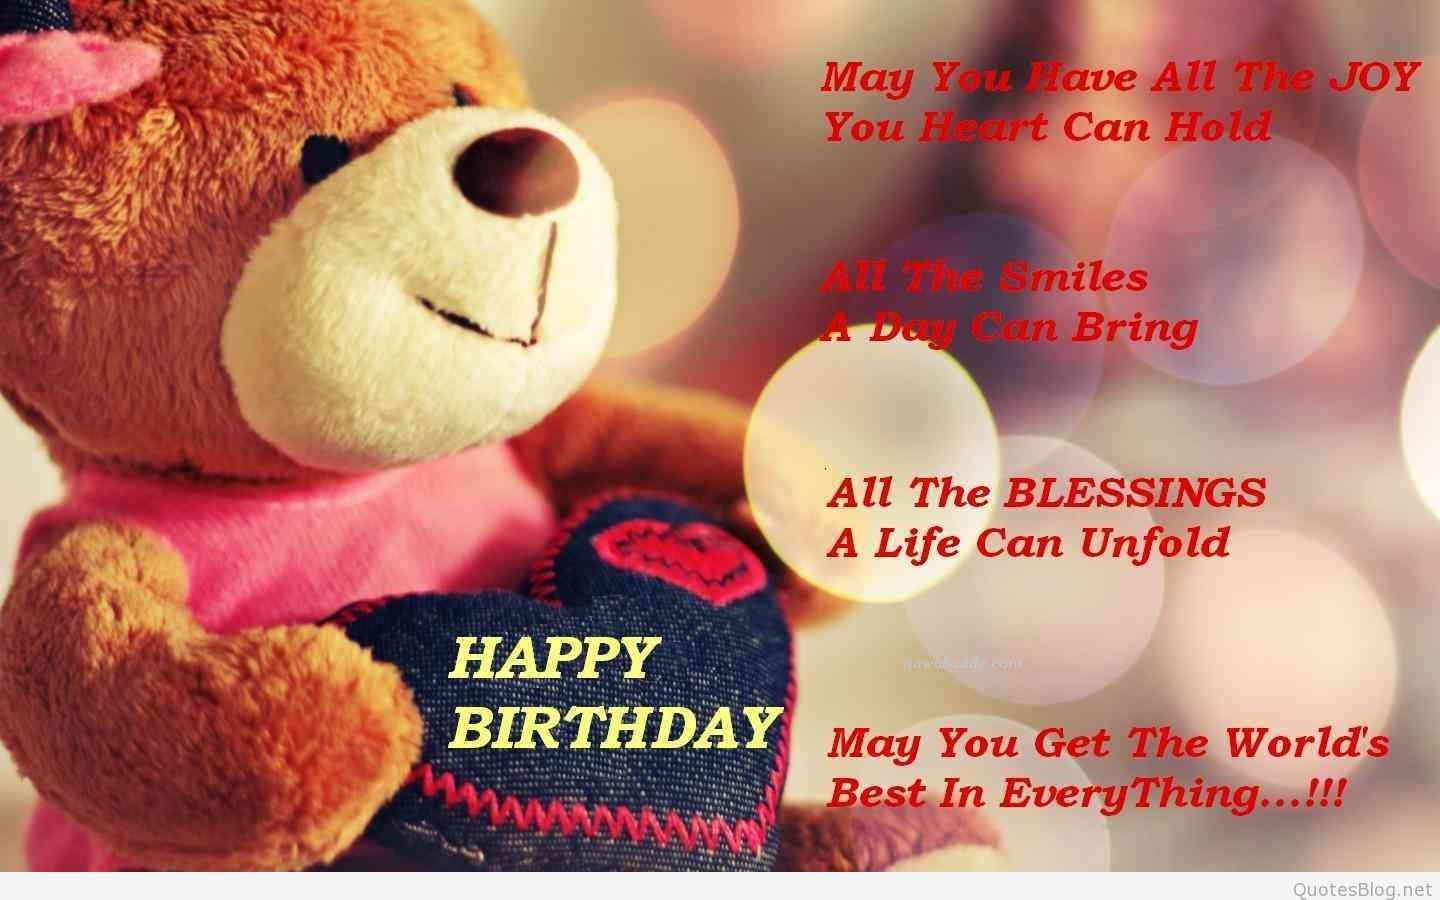 Bithday Whatsapp Dp With Teddy Bear - Birthday Wishes For Best Friend Card , HD Wallpaper & Backgrounds